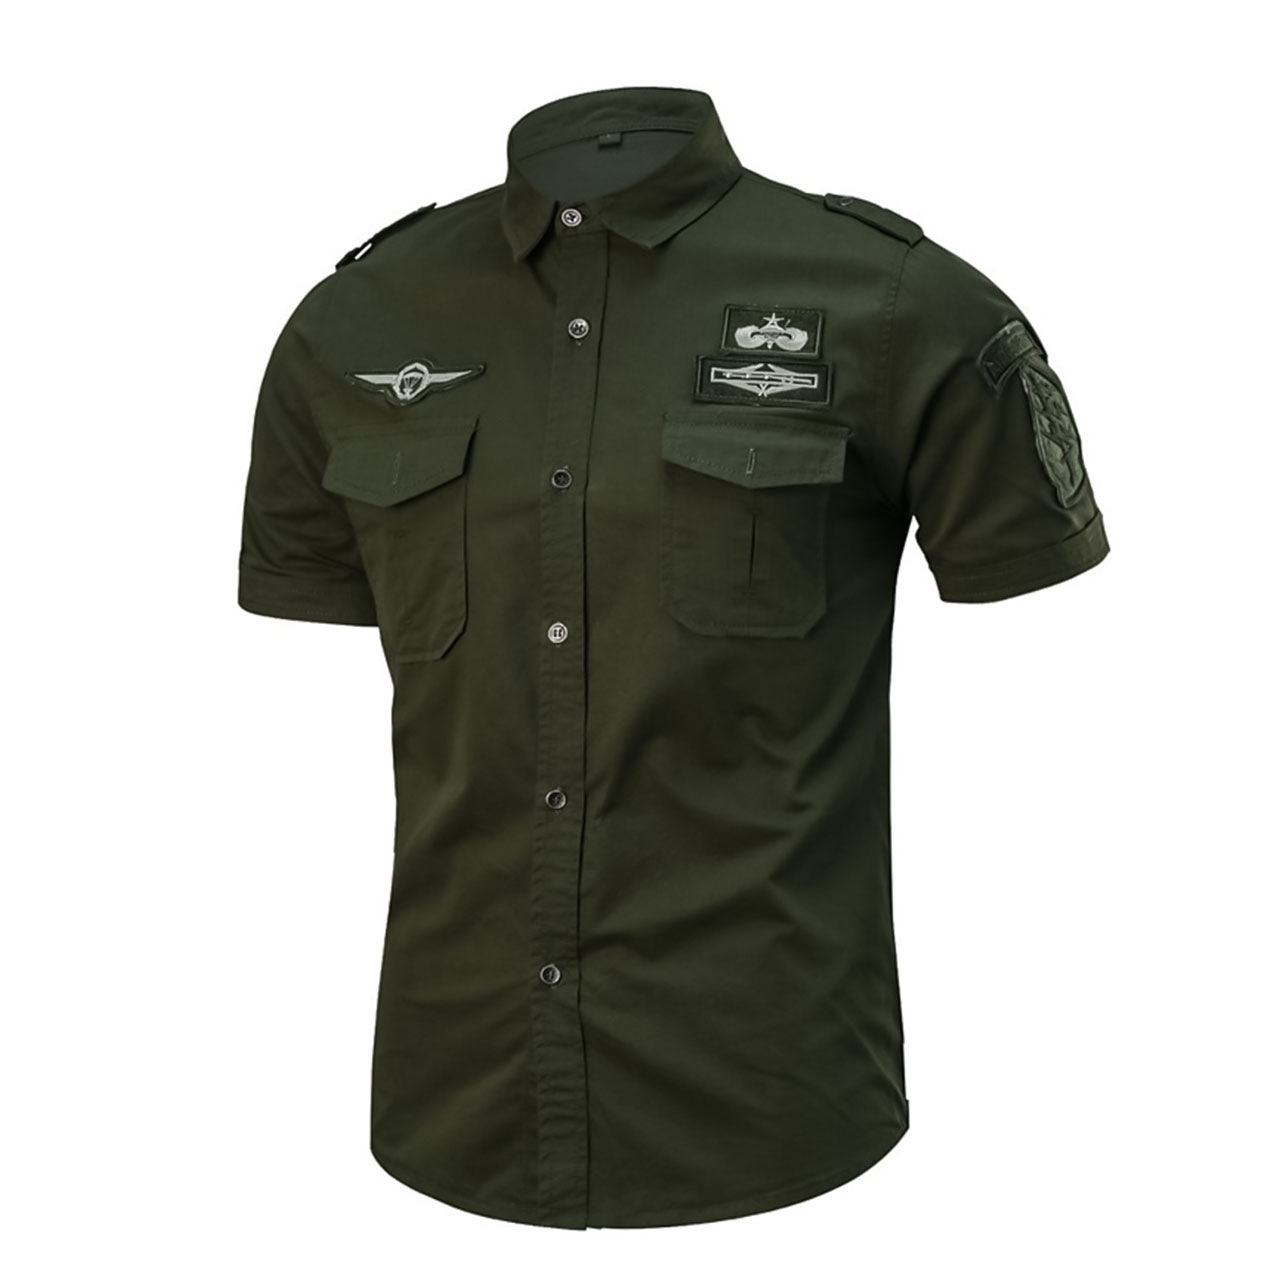 Solid Colored Cotton Short Sleeve Slim Fit Army Green Military Shirt Mens